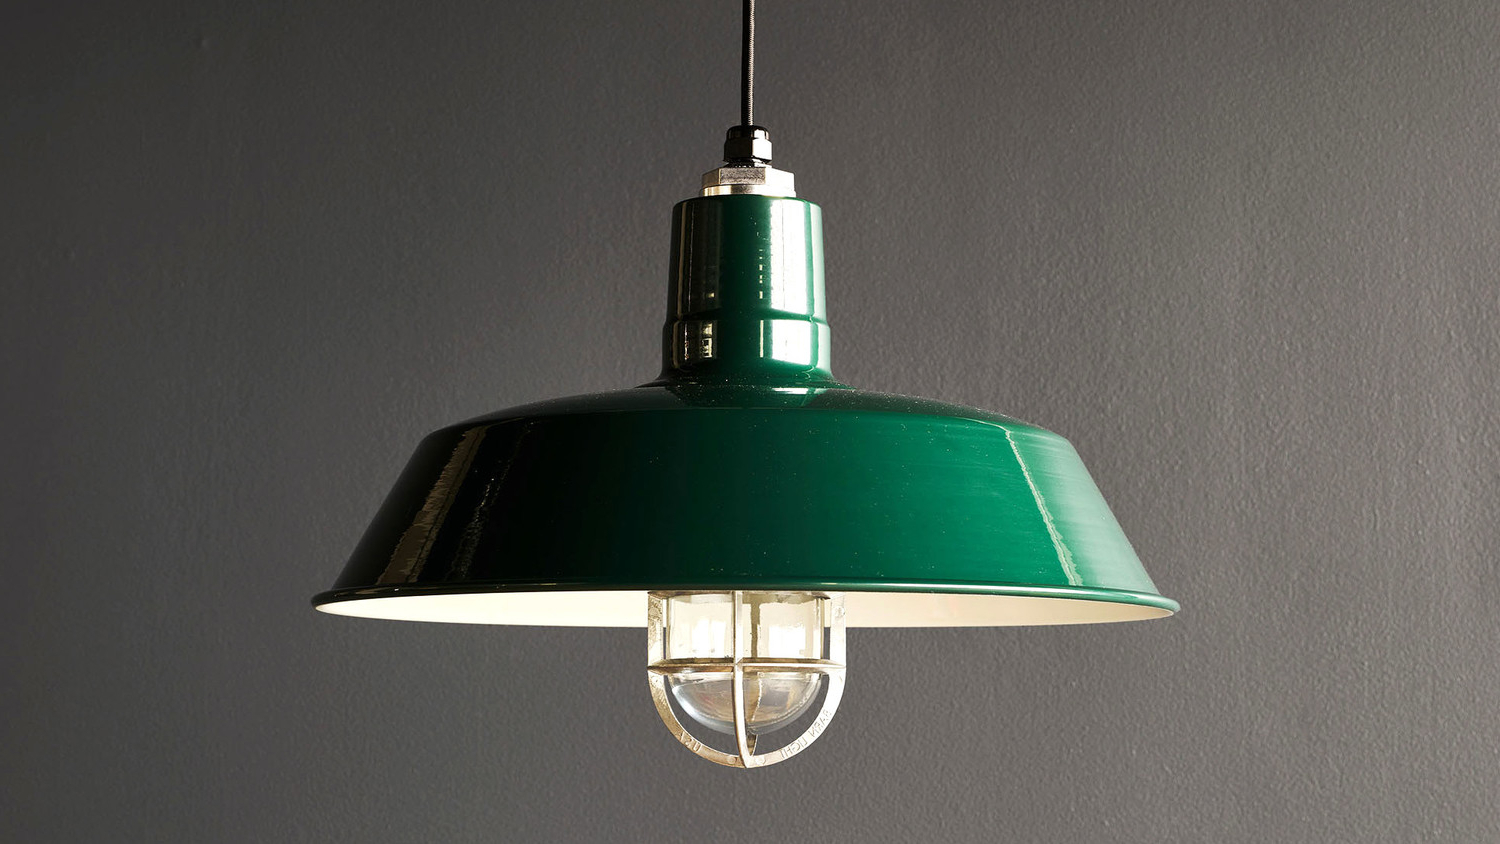 [%Snag These Sales! 43% Off Andover Mills Finnick 1 Light Intended For Most Recently Released Finnick 1 Light Geometric Pendants|Finnick 1 Light Geometric Pendants Intended For Most Recent Snag These Sales! 43% Off Andover Mills Finnick 1 Light|Widely Used Finnick 1 Light Geometric Pendants Pertaining To Snag These Sales! 43% Off Andover Mills Finnick 1 Light|Fashionable Snag These Sales! 43% Off Andover Mills Finnick 1 Light In Finnick 1 Light Geometric Pendants%] (View 15 of 25)